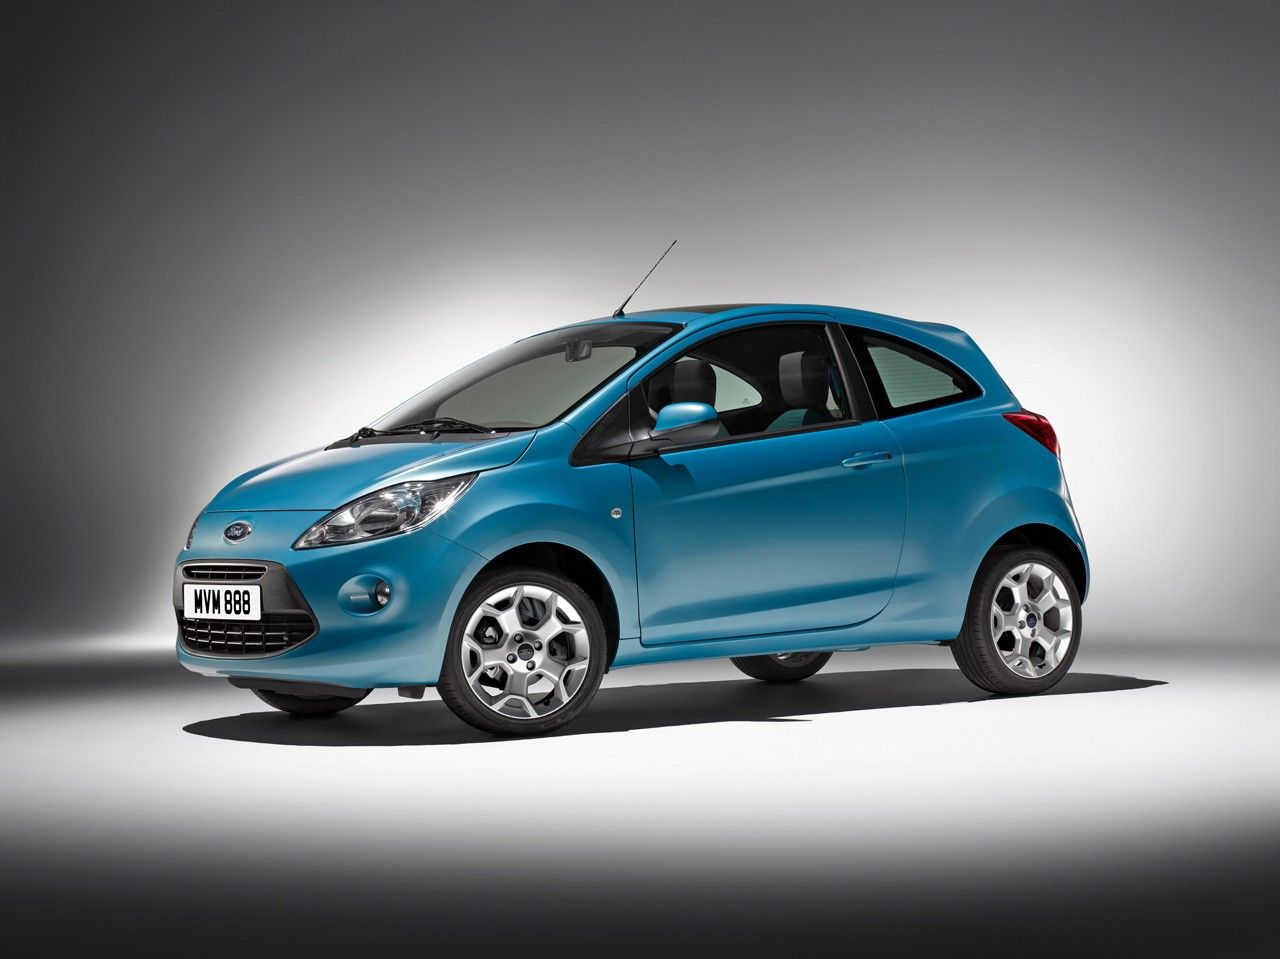 Small modern car from ford ka 2009 ford car cars gallery new